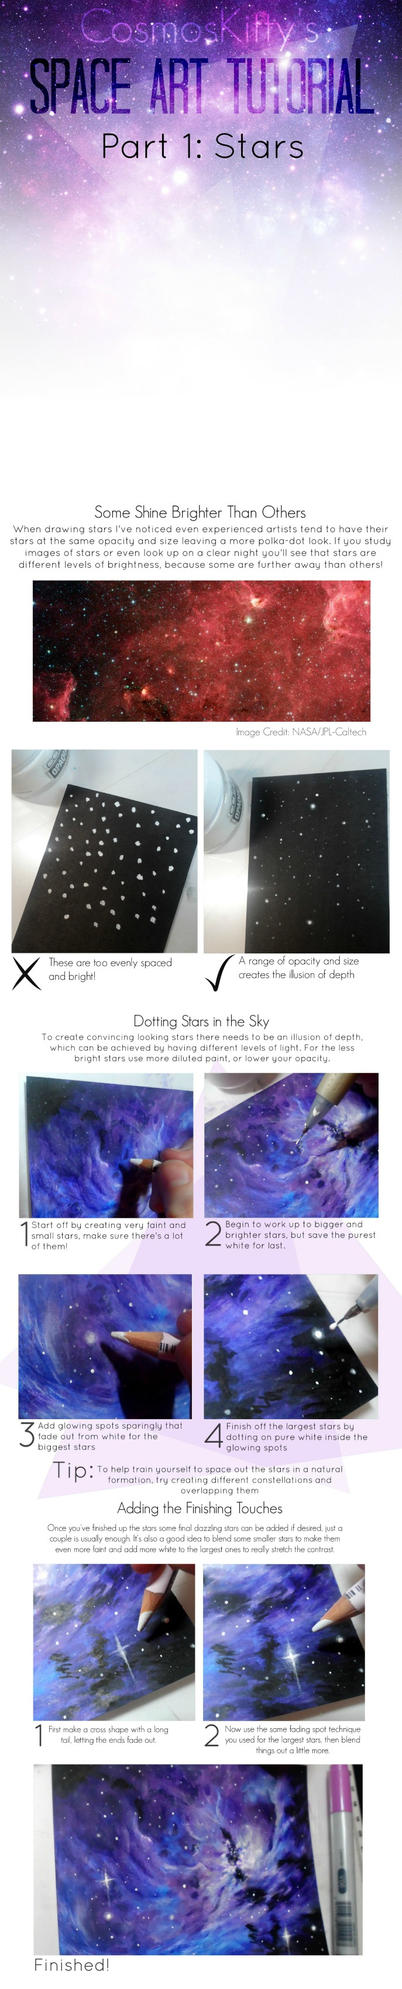 Space Art Tutorial: Part 1 by CosmosKitty